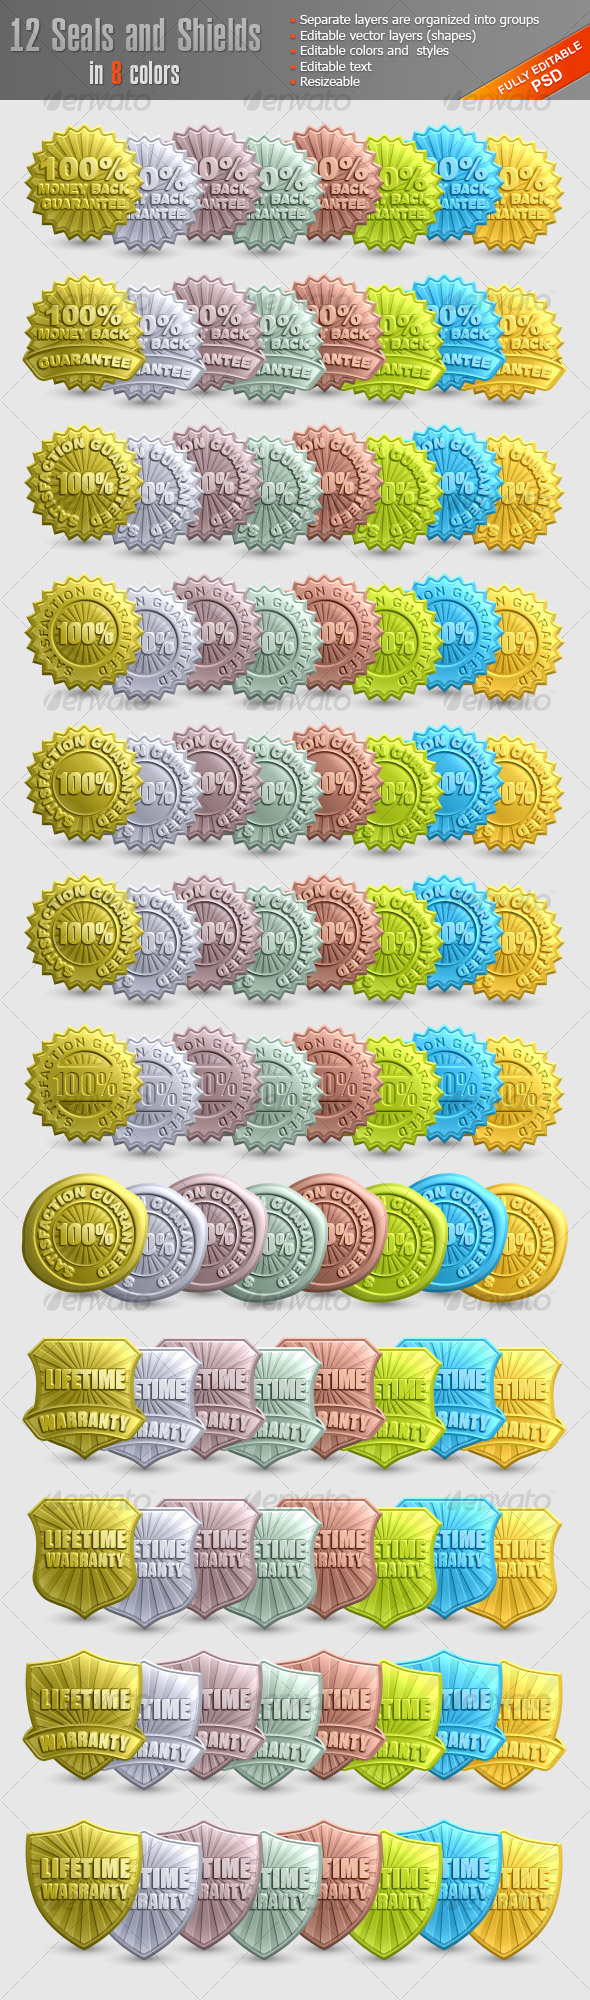 GraphicRiver Embossed Seals and Shields 110982